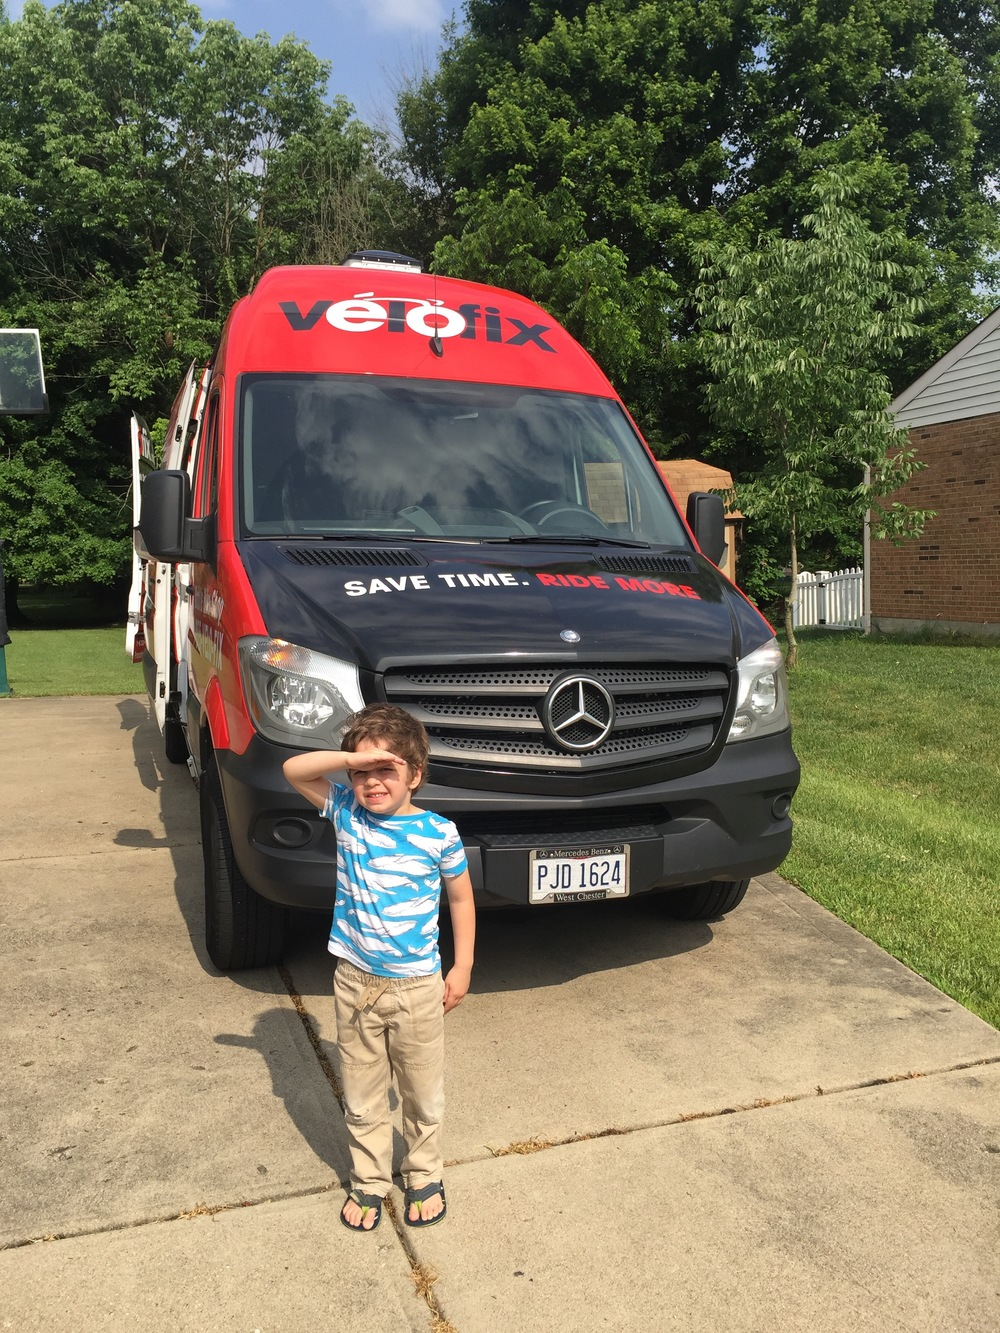 My son was pretty pumped to see this cool van!